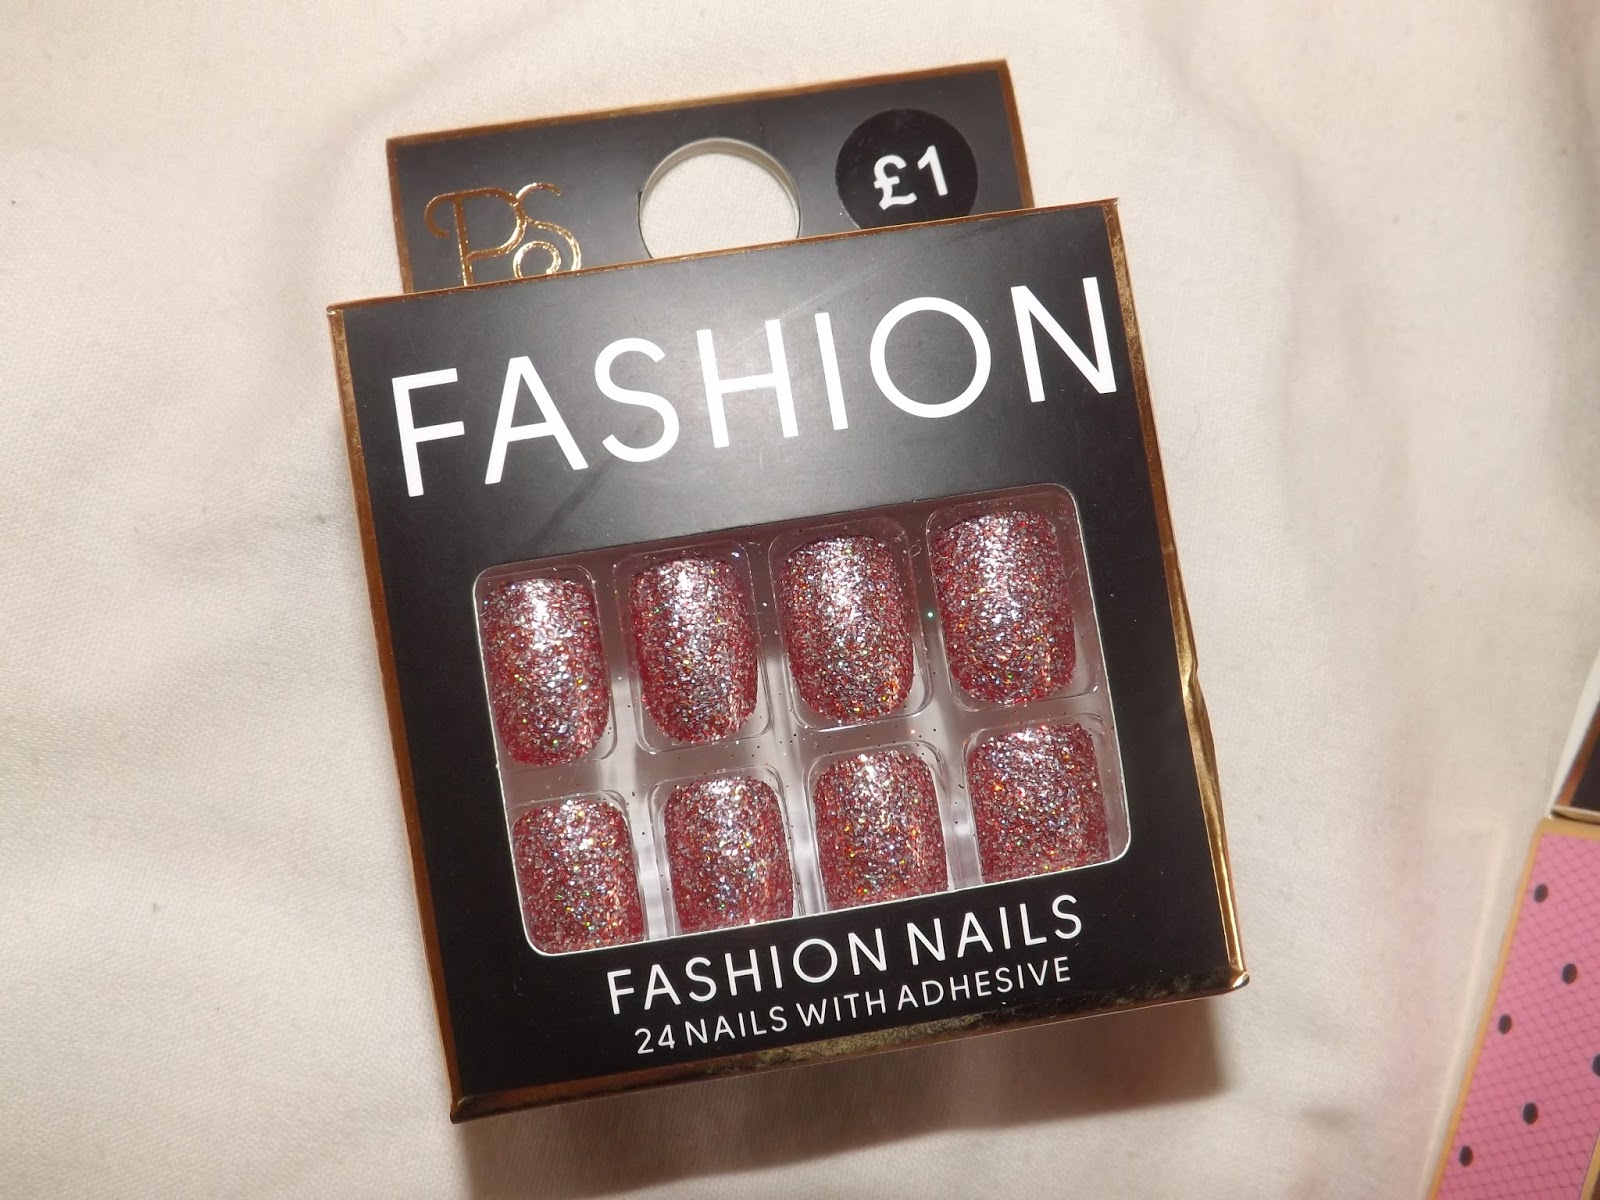 they do plain ones matte ones patterned ones pointy ones and seasonal ones like christmas fake nails which i freak out over